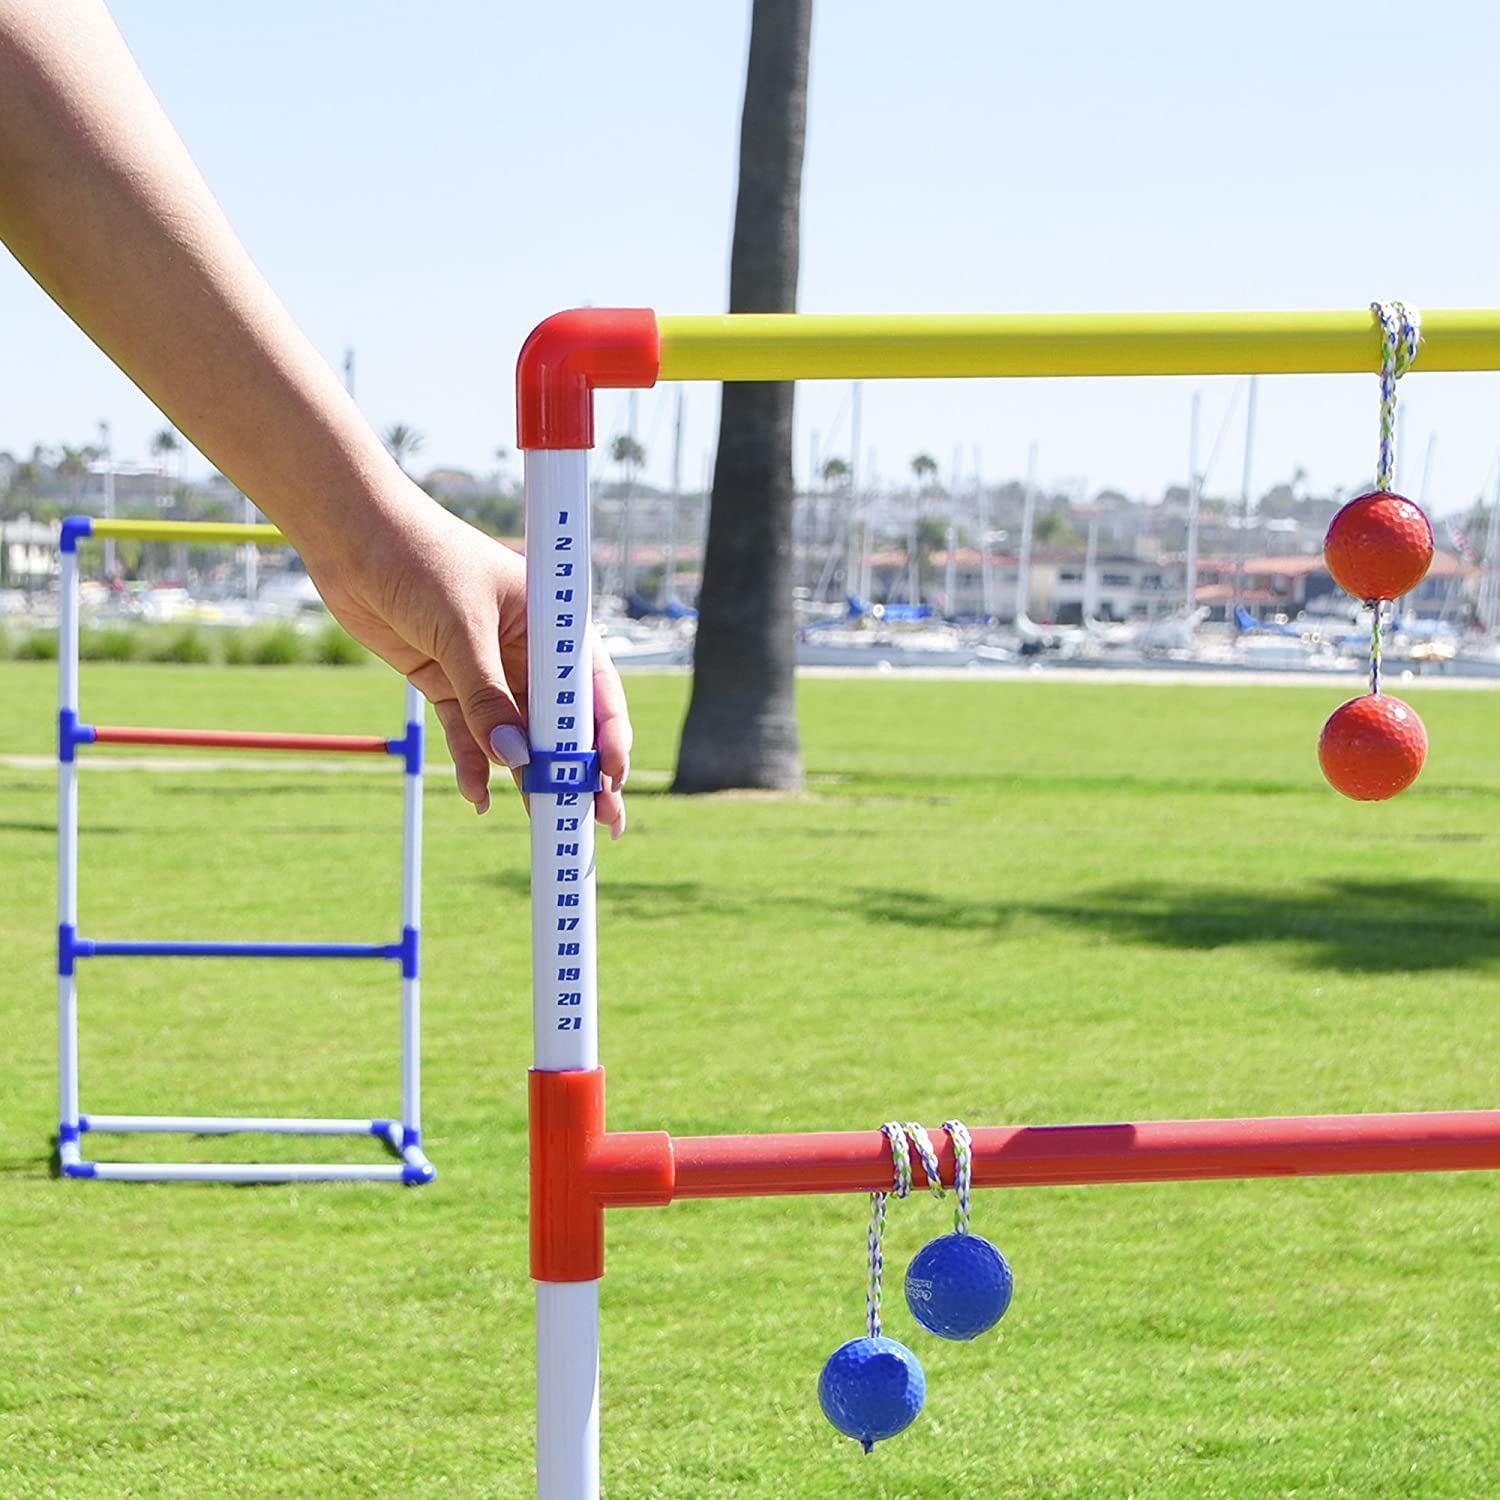 amazon com gosports premium ladder toss game with 6 bolos and